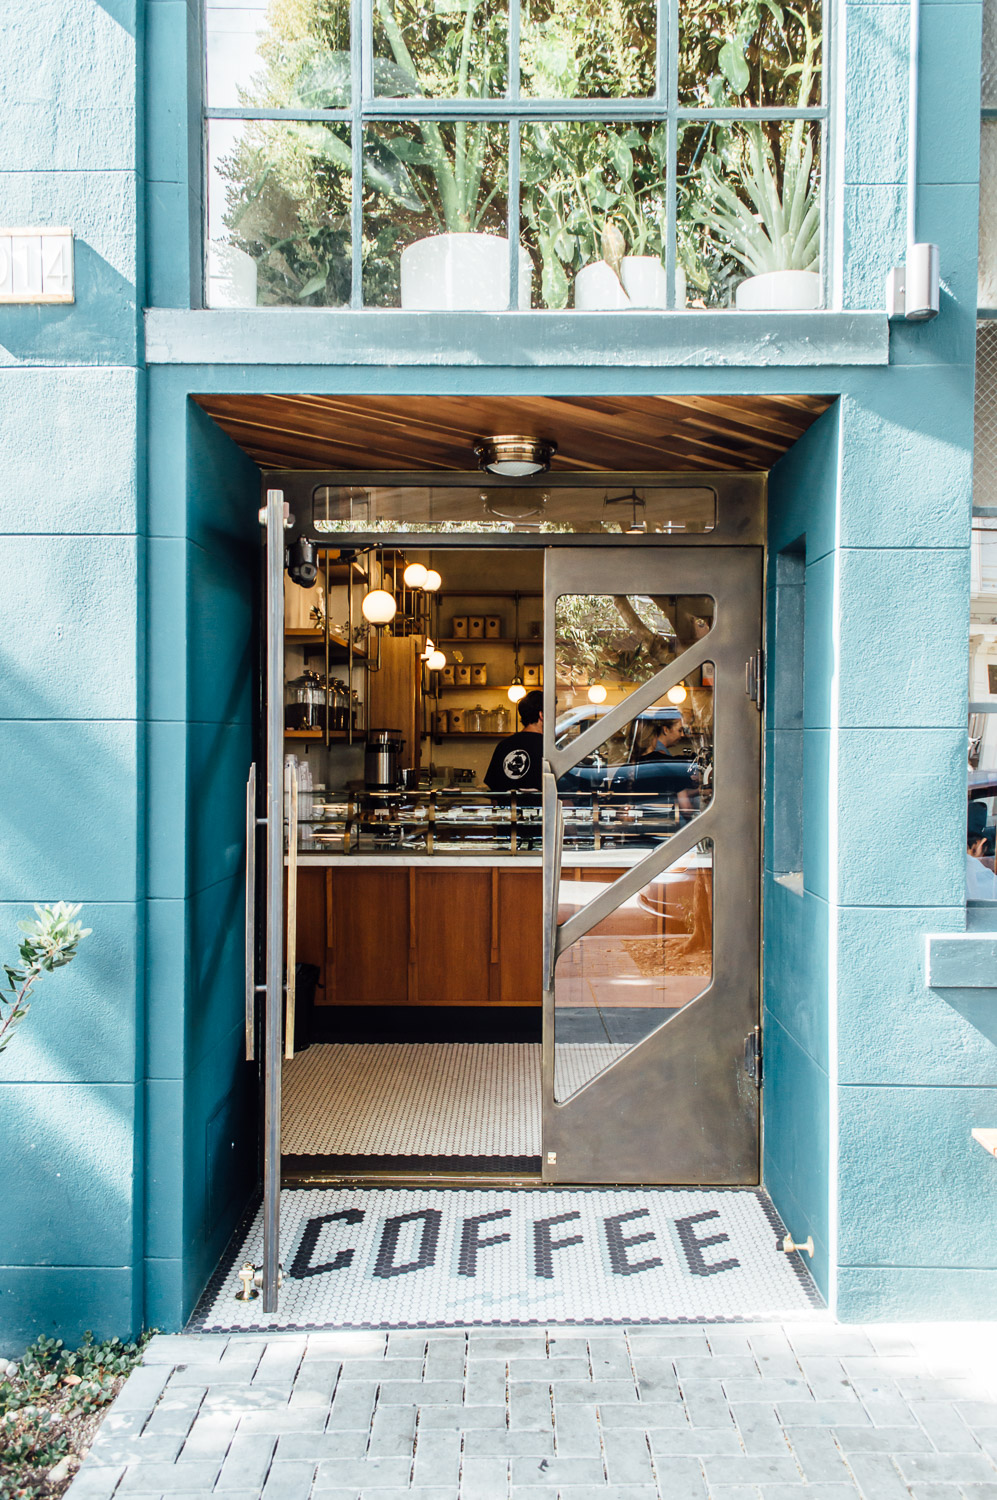 sightglass-coffee-mission-san-francisco-california-weekend